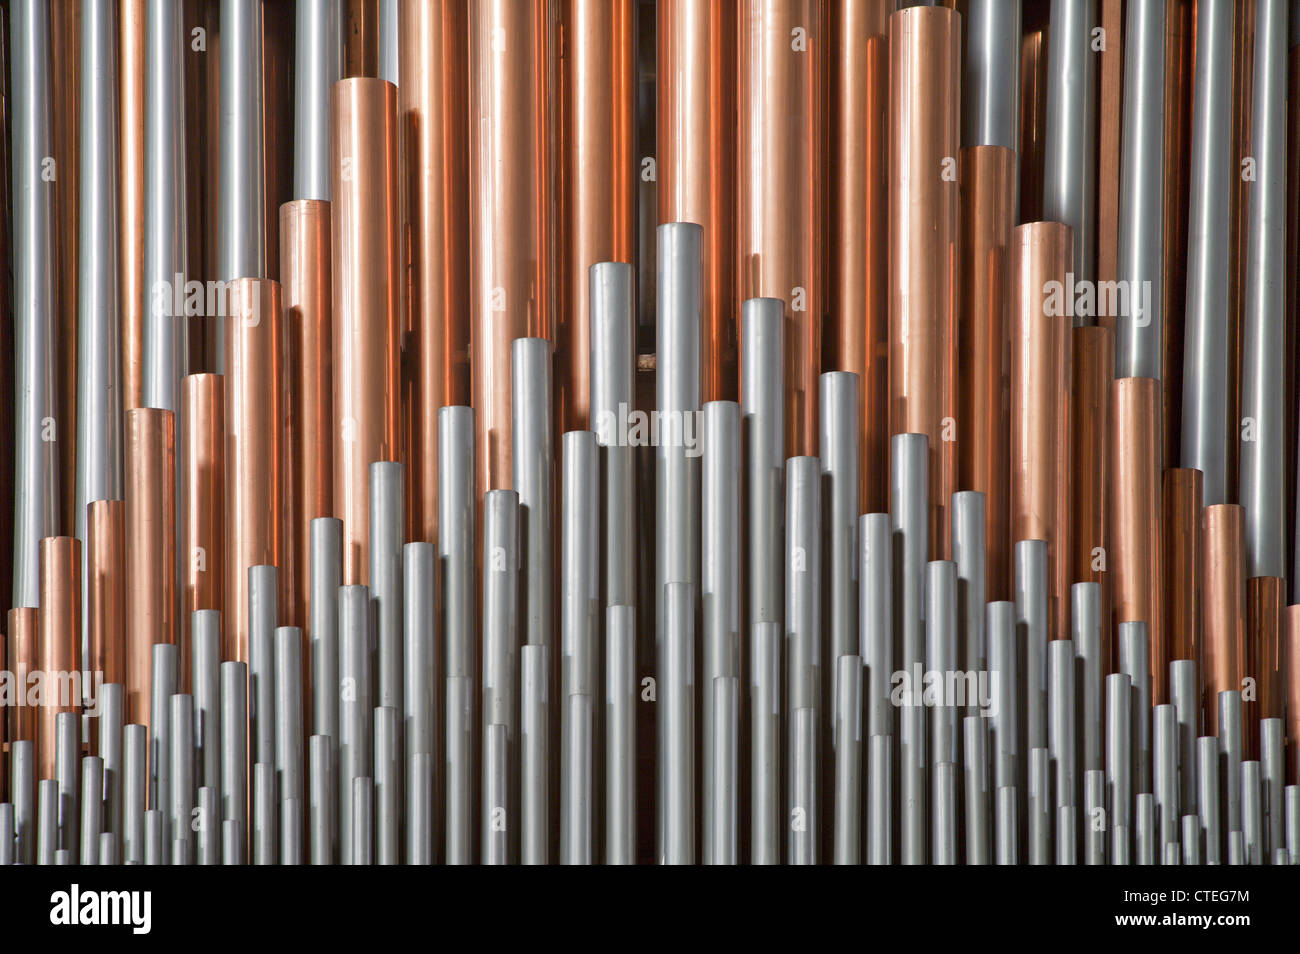 Brussels - Detail from organ in National Basilica of the Sacred Heart - Stock Image